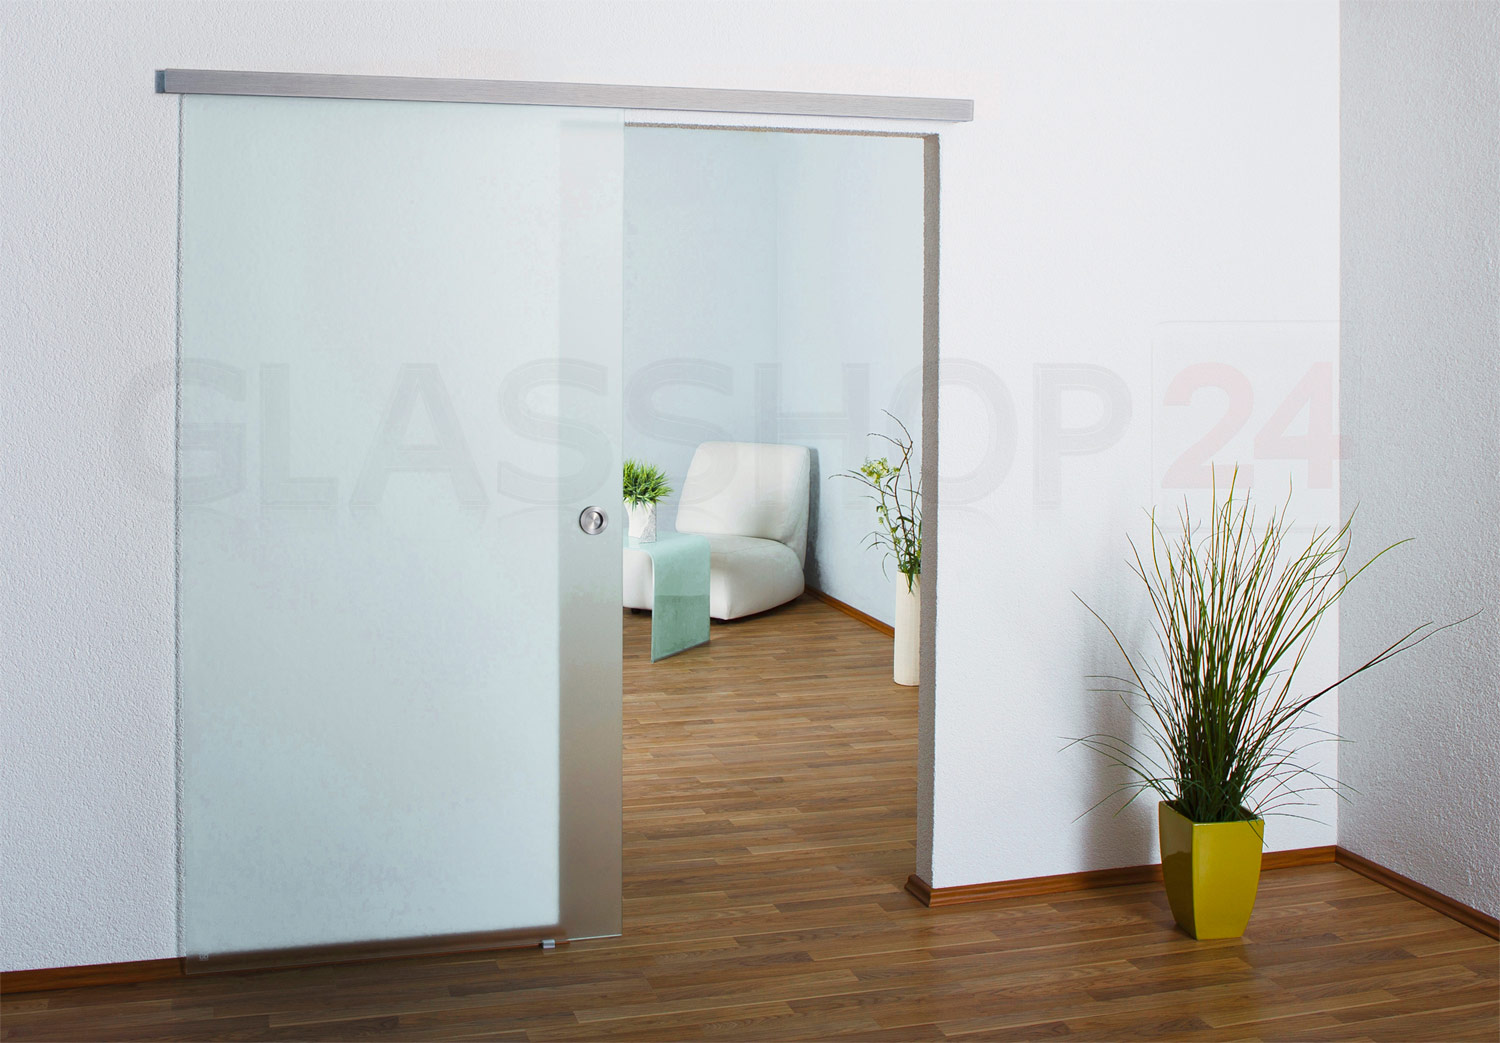 glasschiebet r glast r glas t r ganzglas schiebet r satiniert oder klarglas ebay. Black Bedroom Furniture Sets. Home Design Ideas